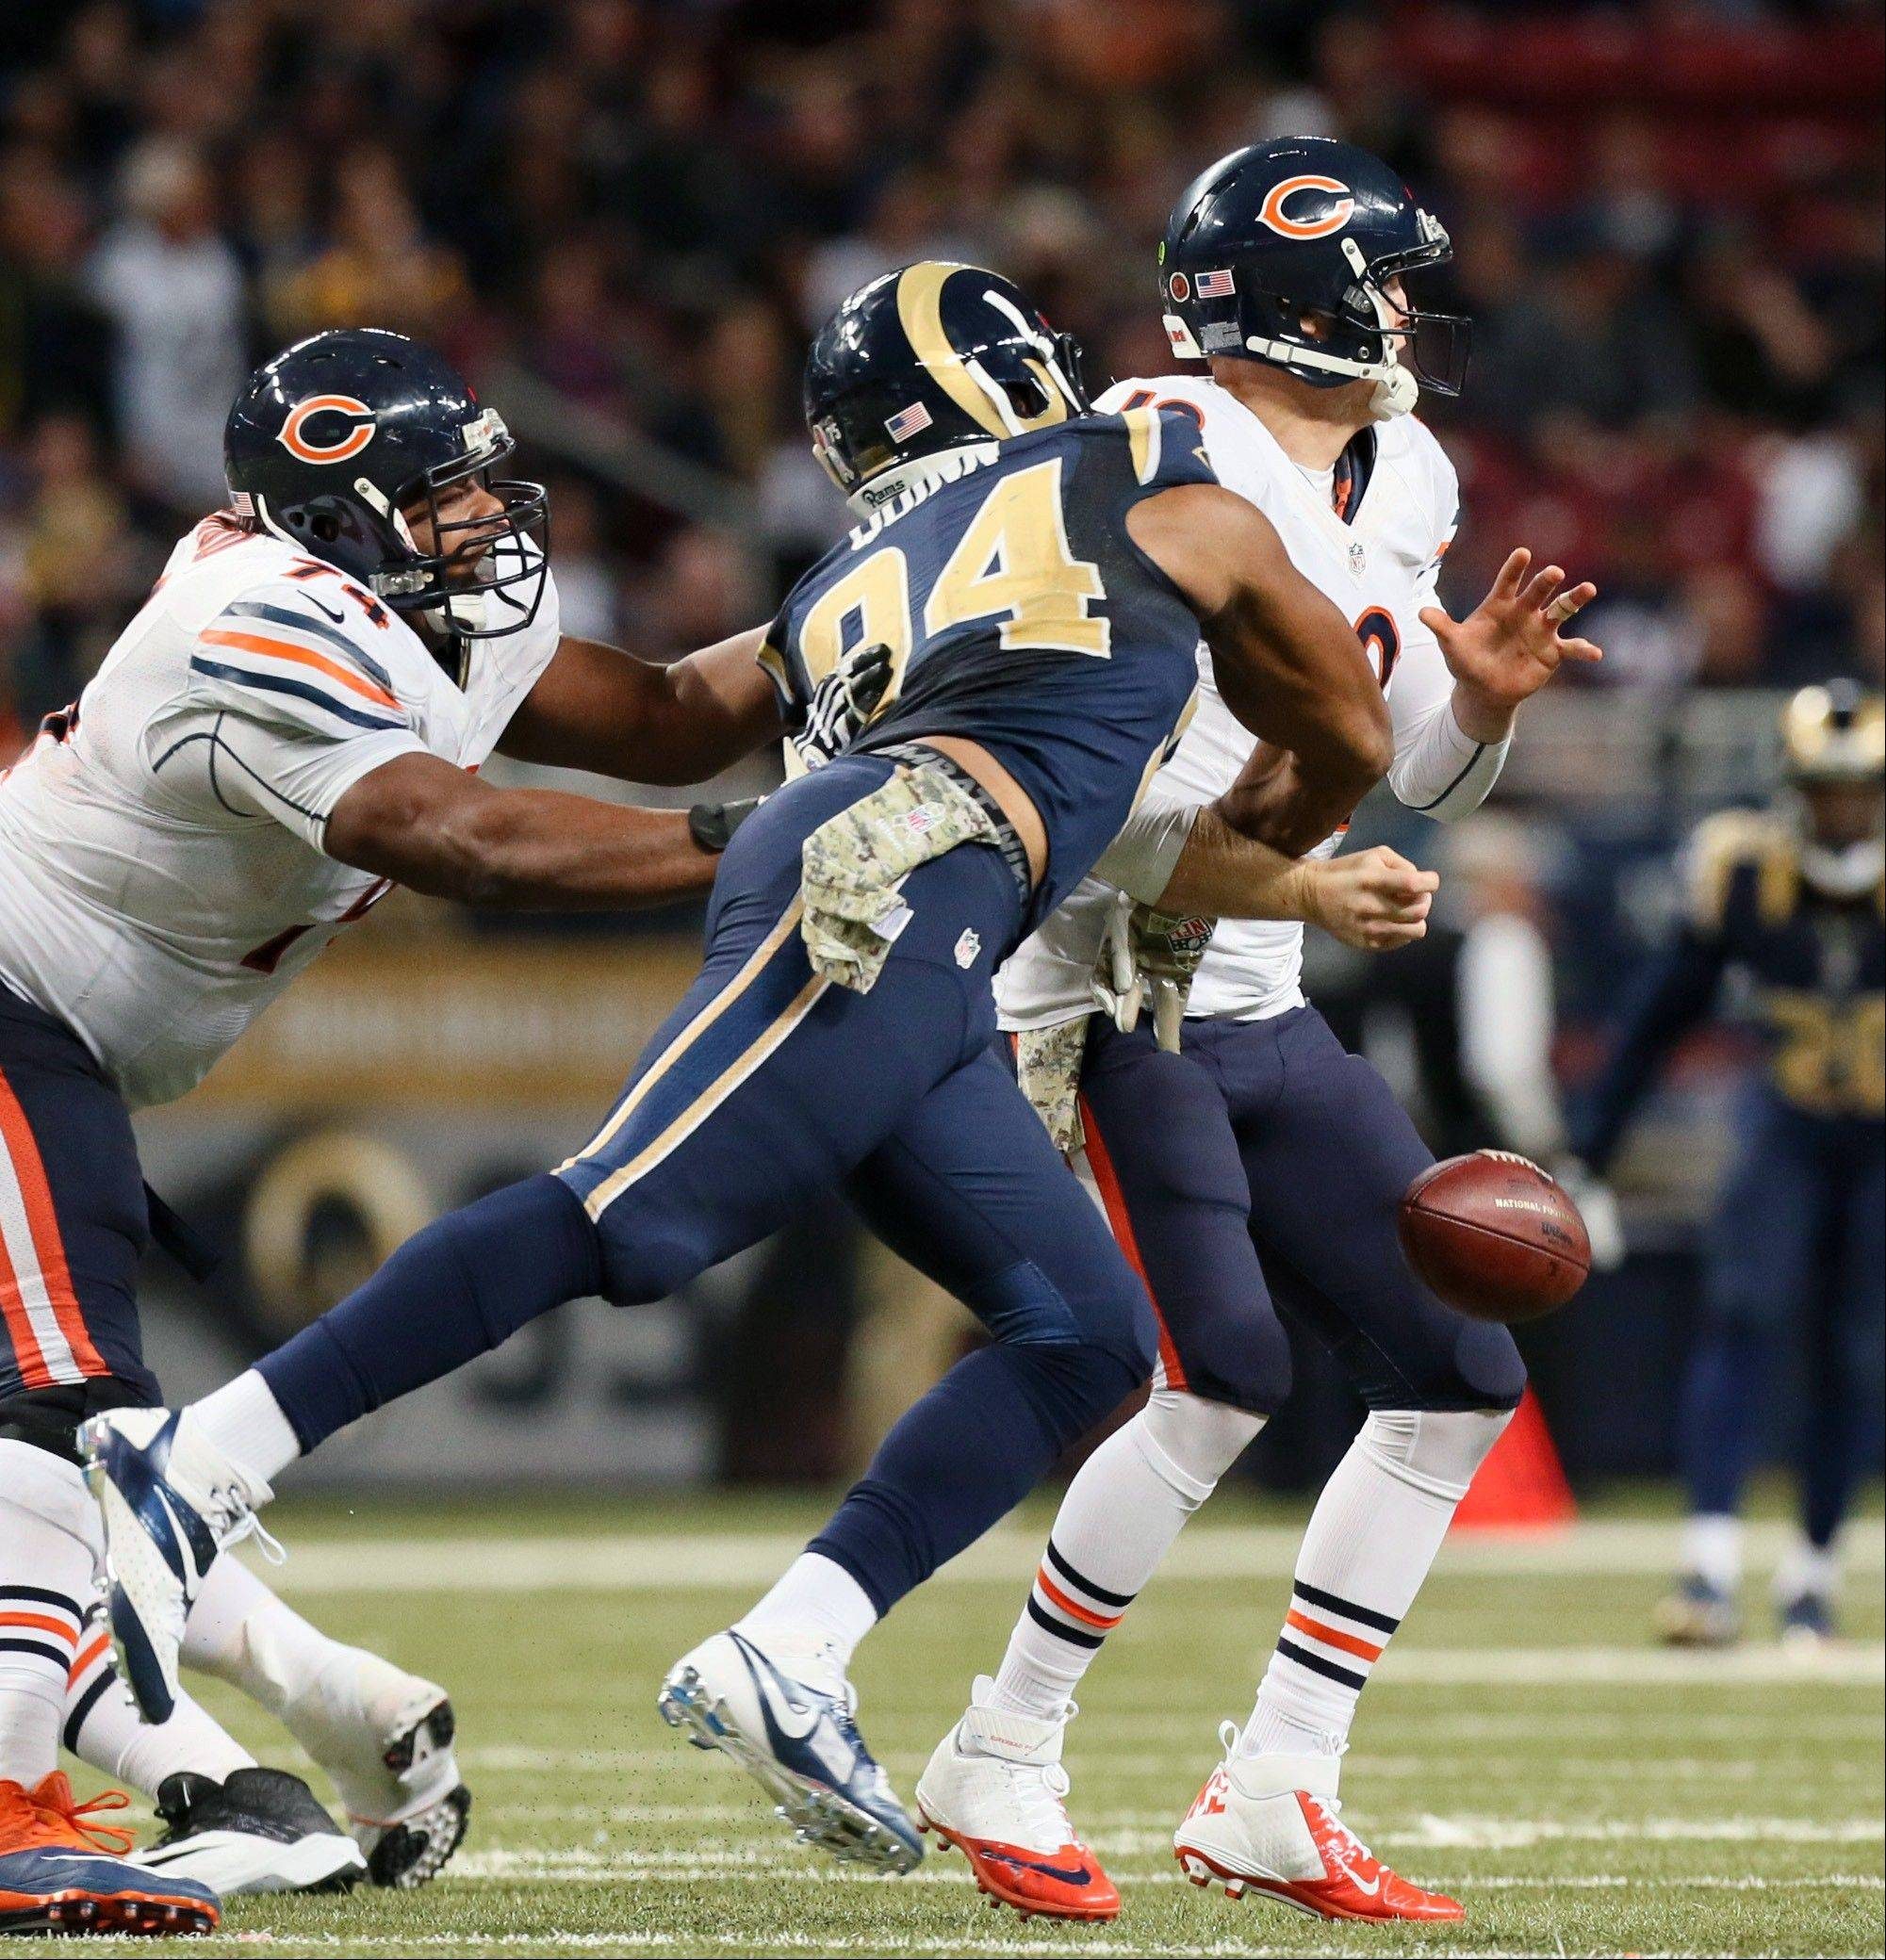 Bears offer no defense of loss to Rams